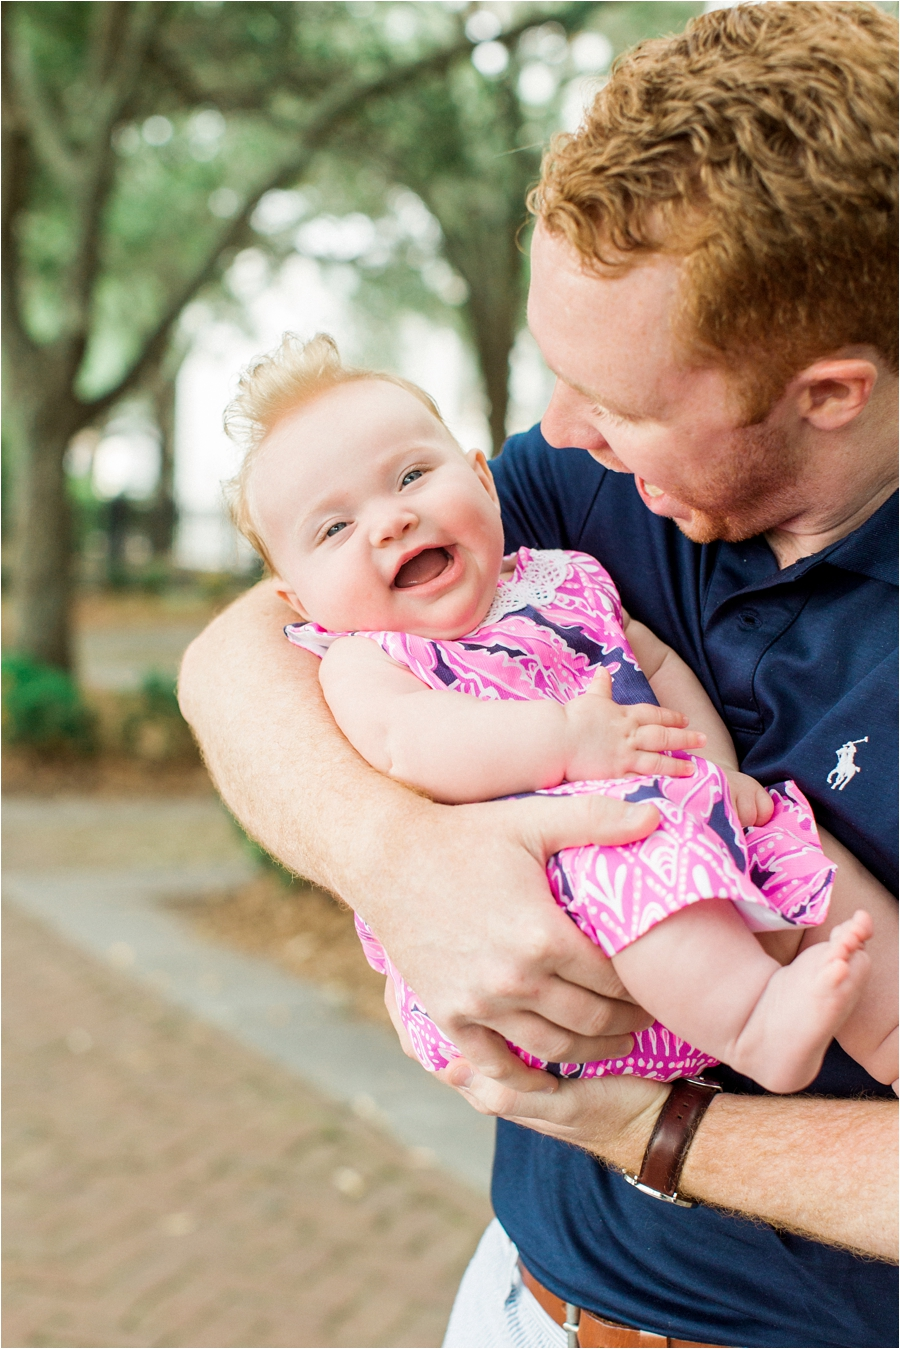 lilly pulitzer southern family session in charleston south carolina by charlottesville photographer, amy nicole photography_0013